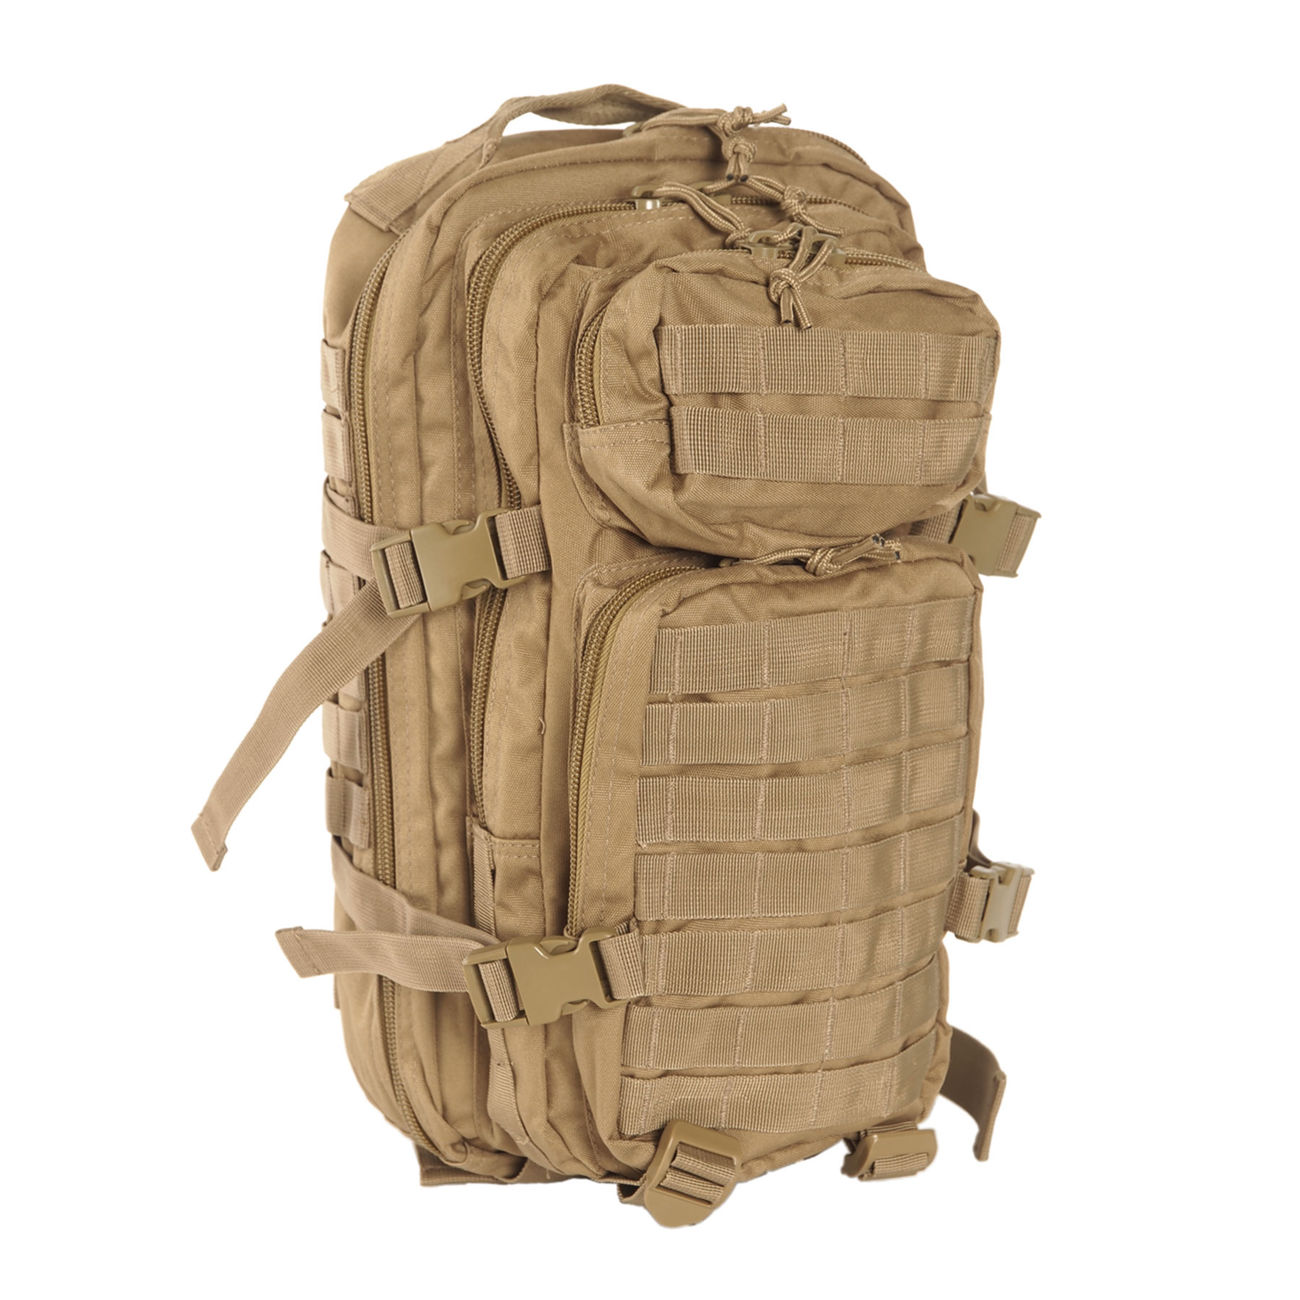 Mil-Tec Rucksack US Assault Pack I 20 Liter coyote 0